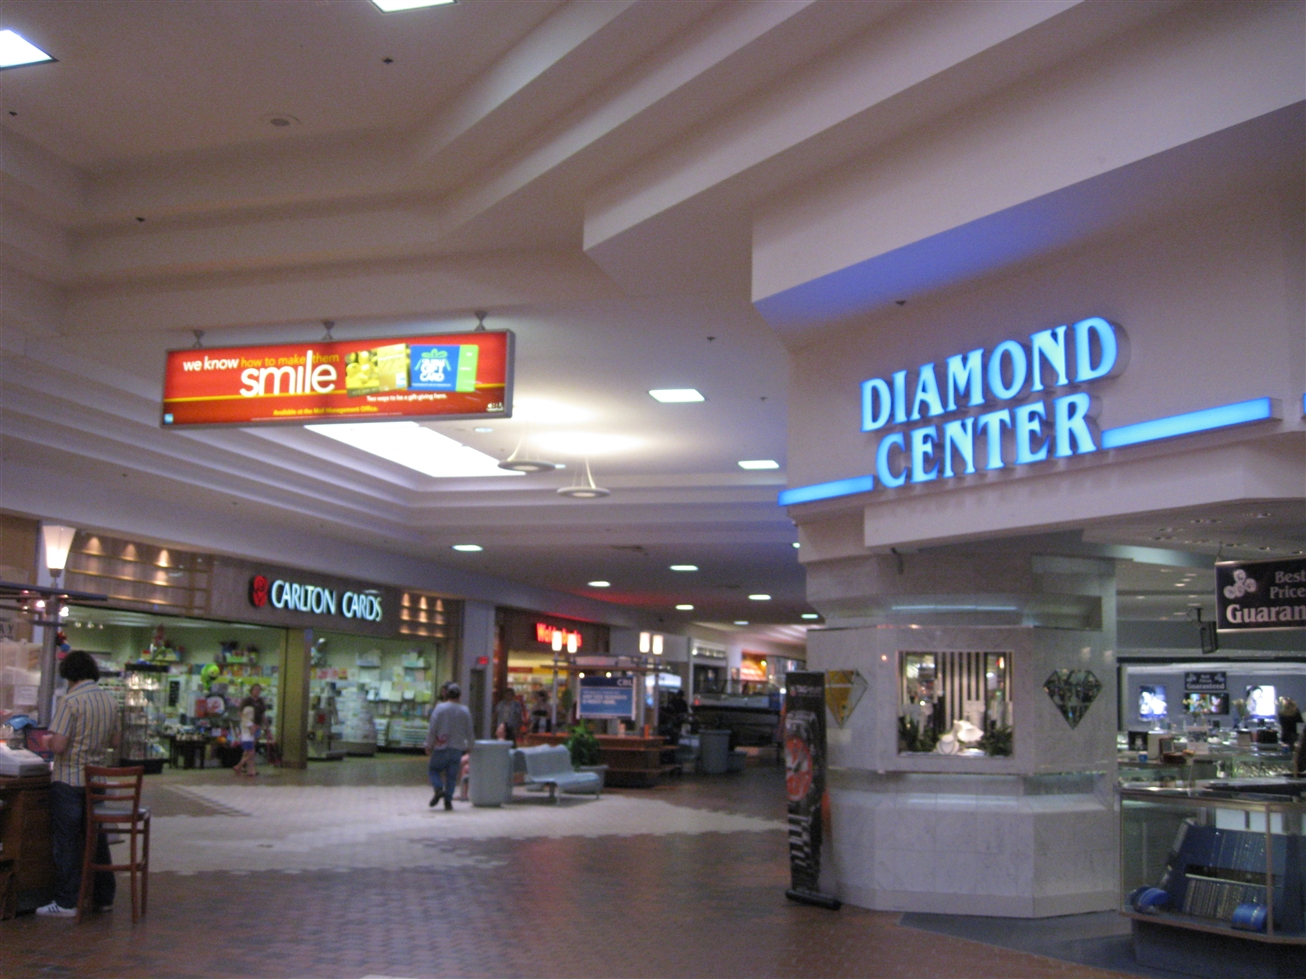 Janesville Mall Diamond Center in Janesville, WI